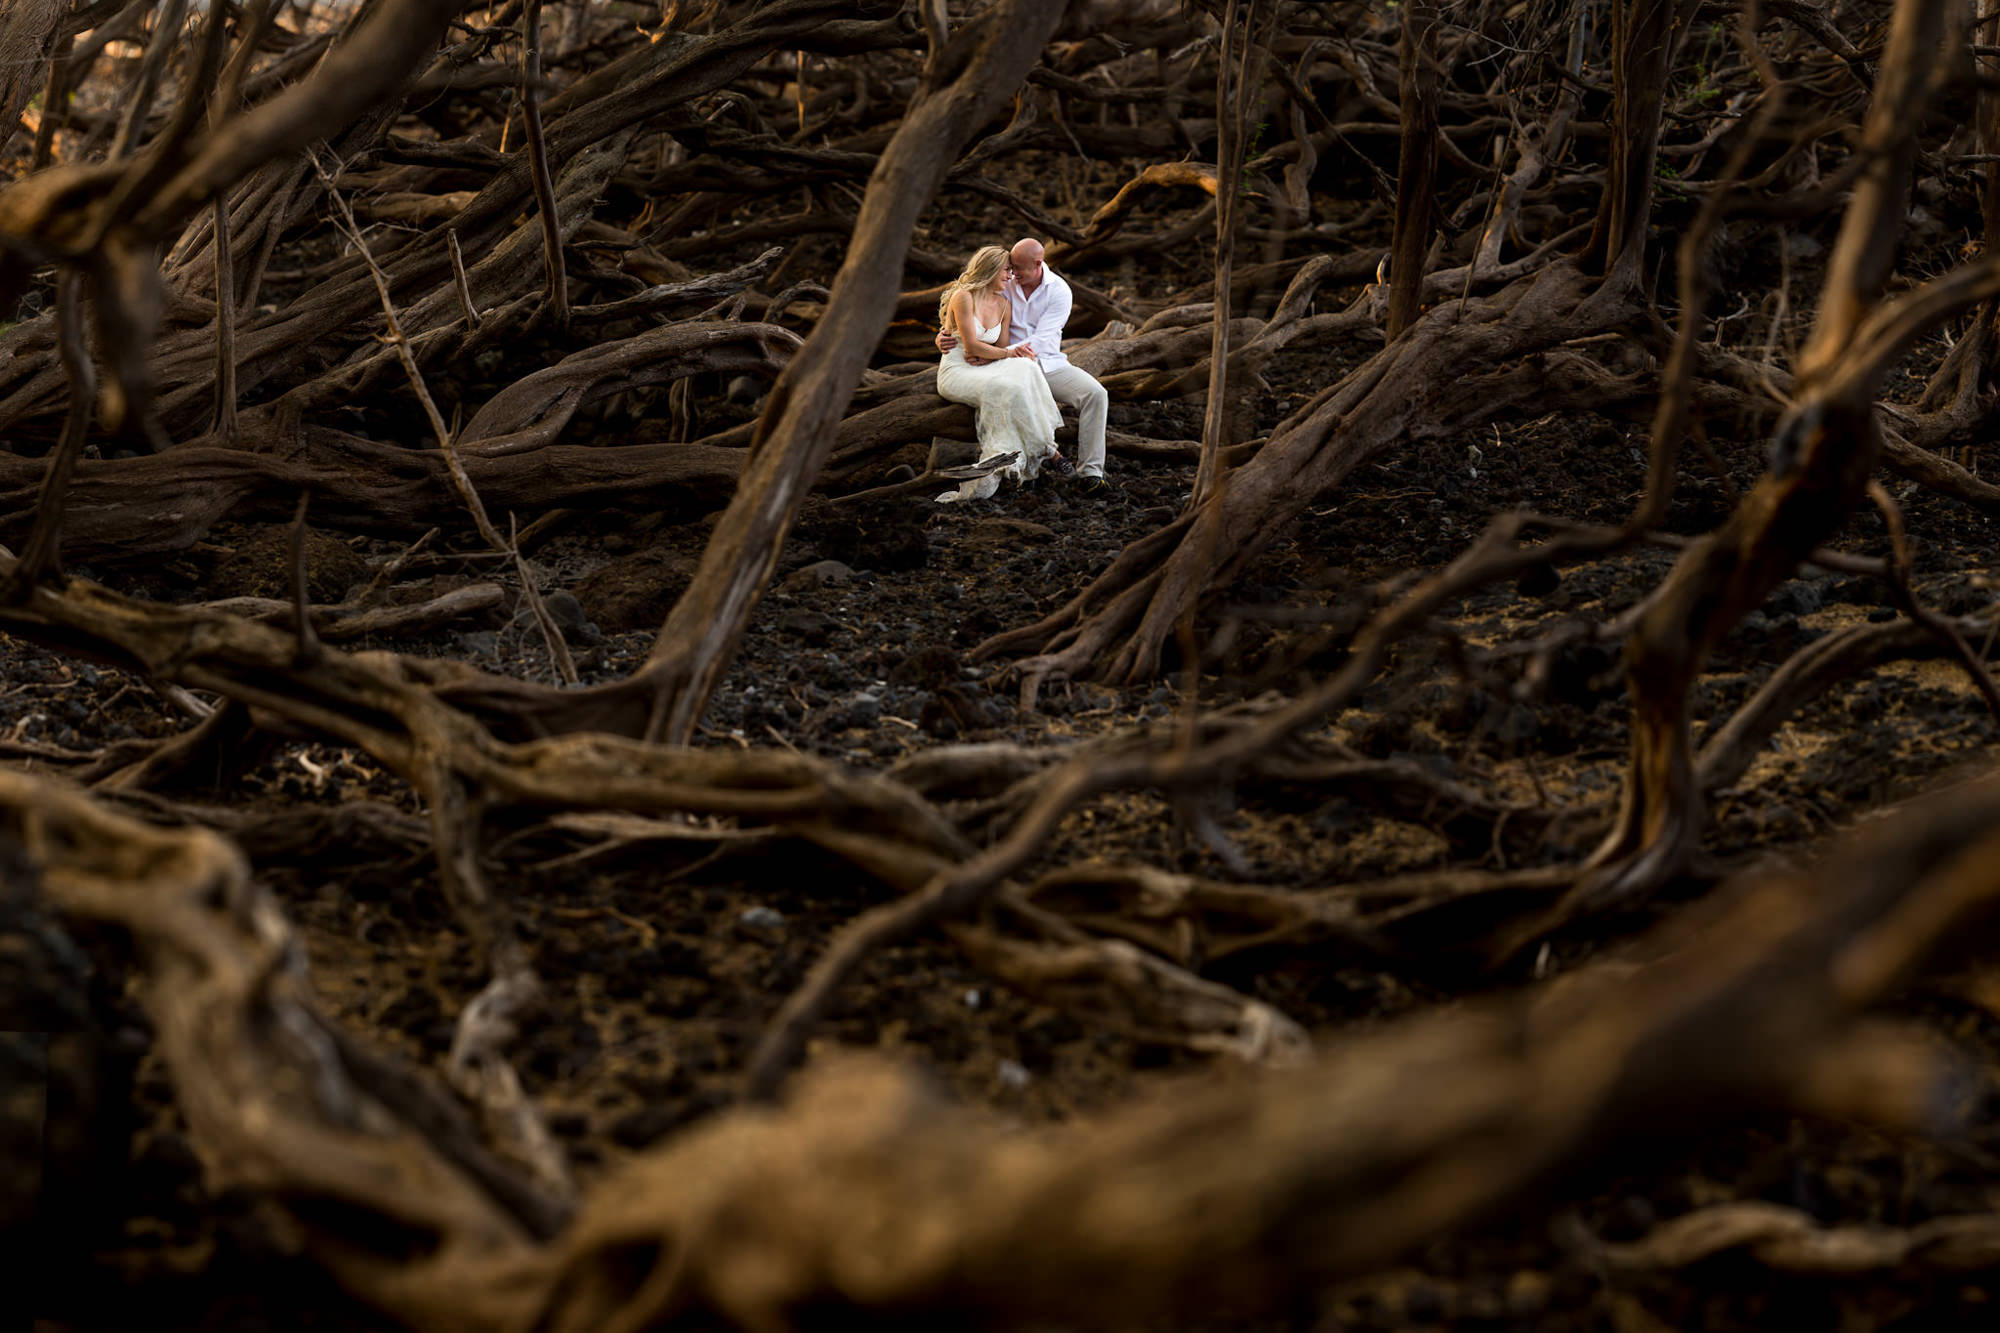 Couple among twisting roots - photo by Two Mann Studios